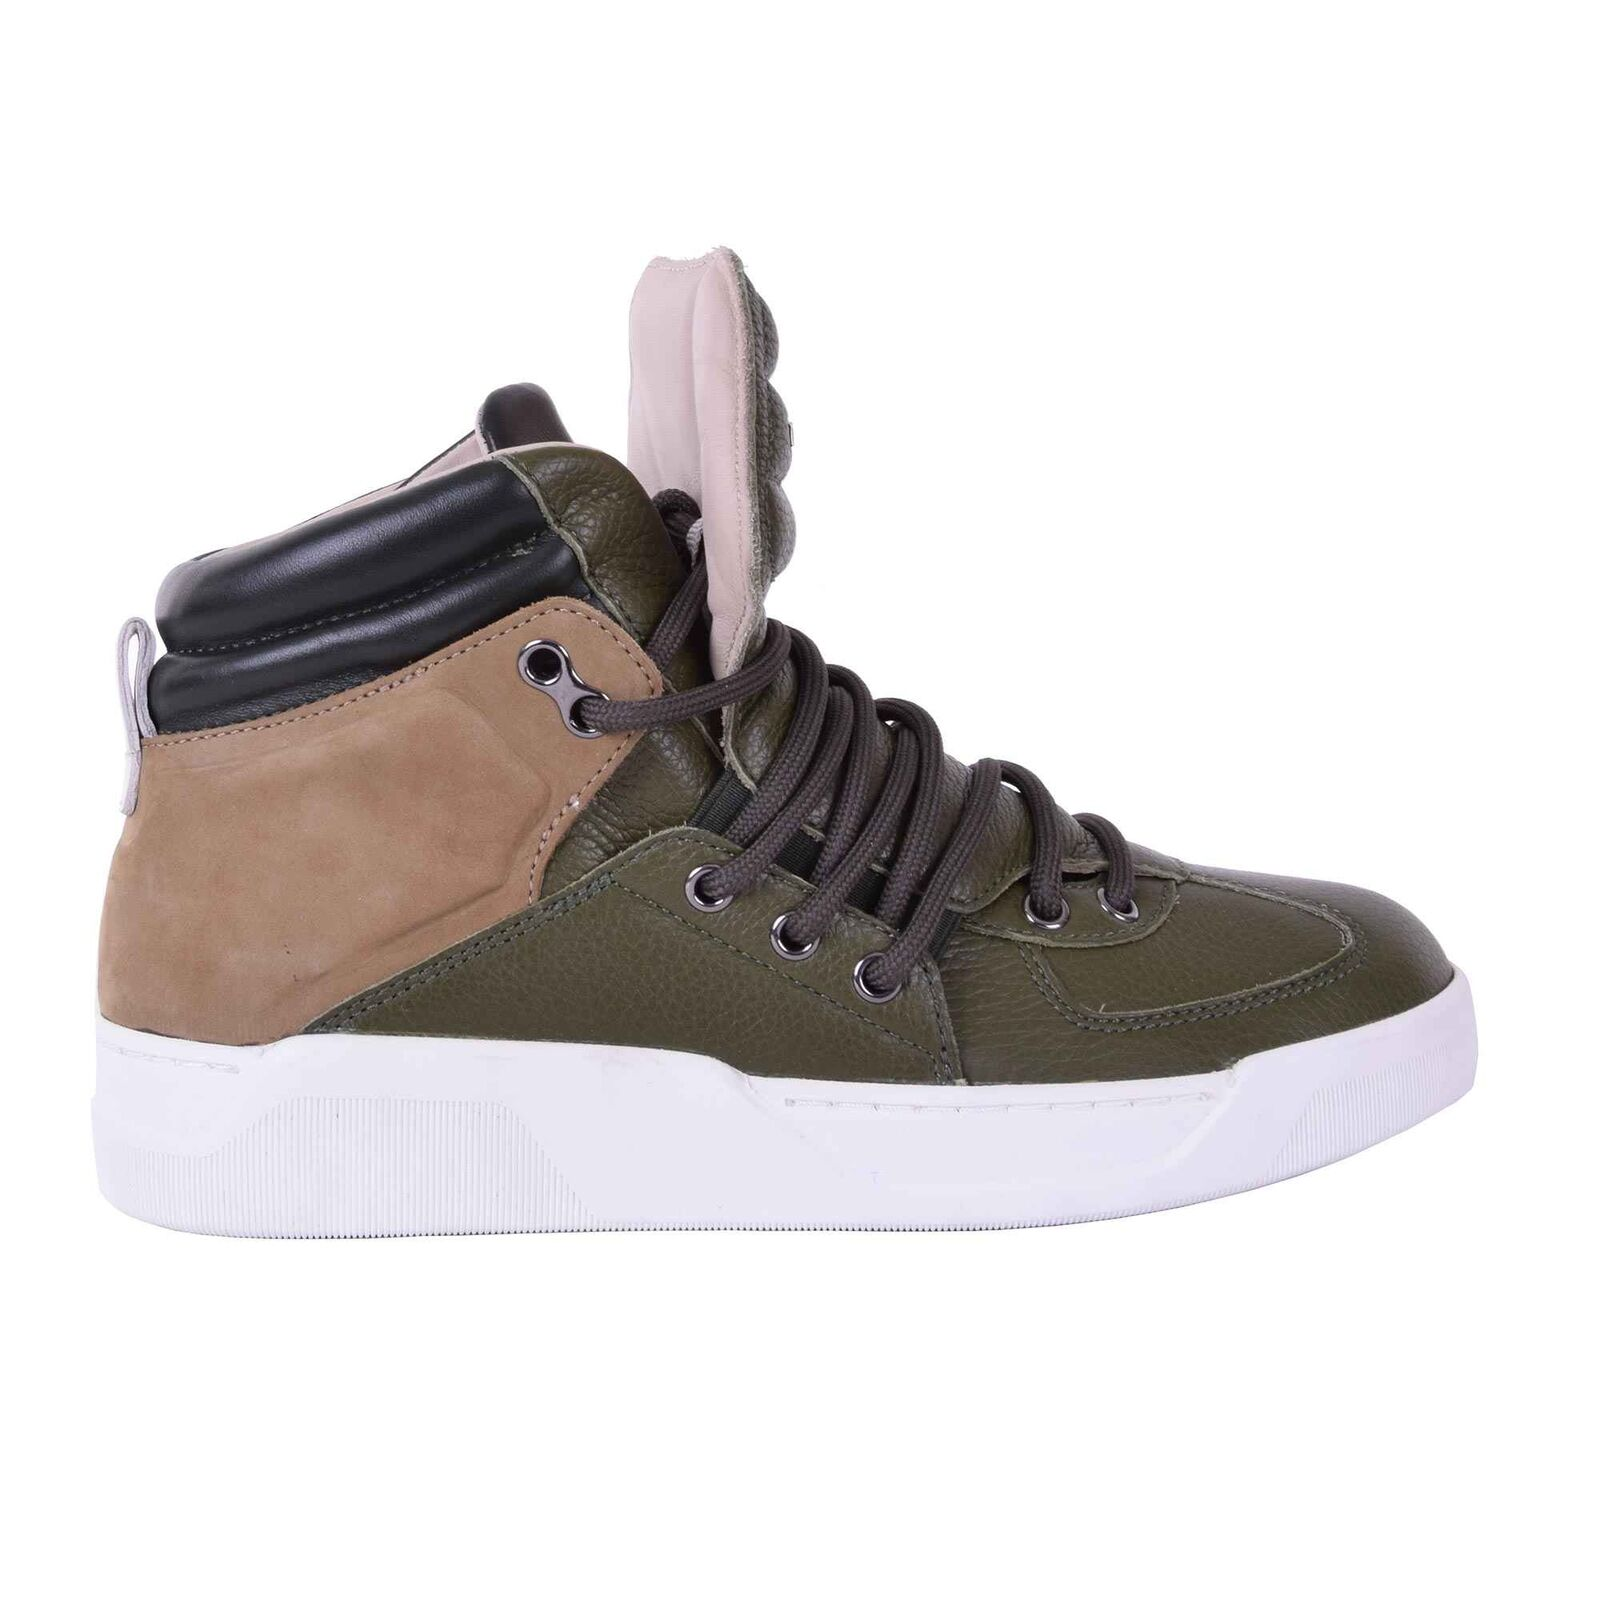 DOLCE & GABBANA High-Top Sneaker Shoes BENELUX Green Brown Made in Italy 05924